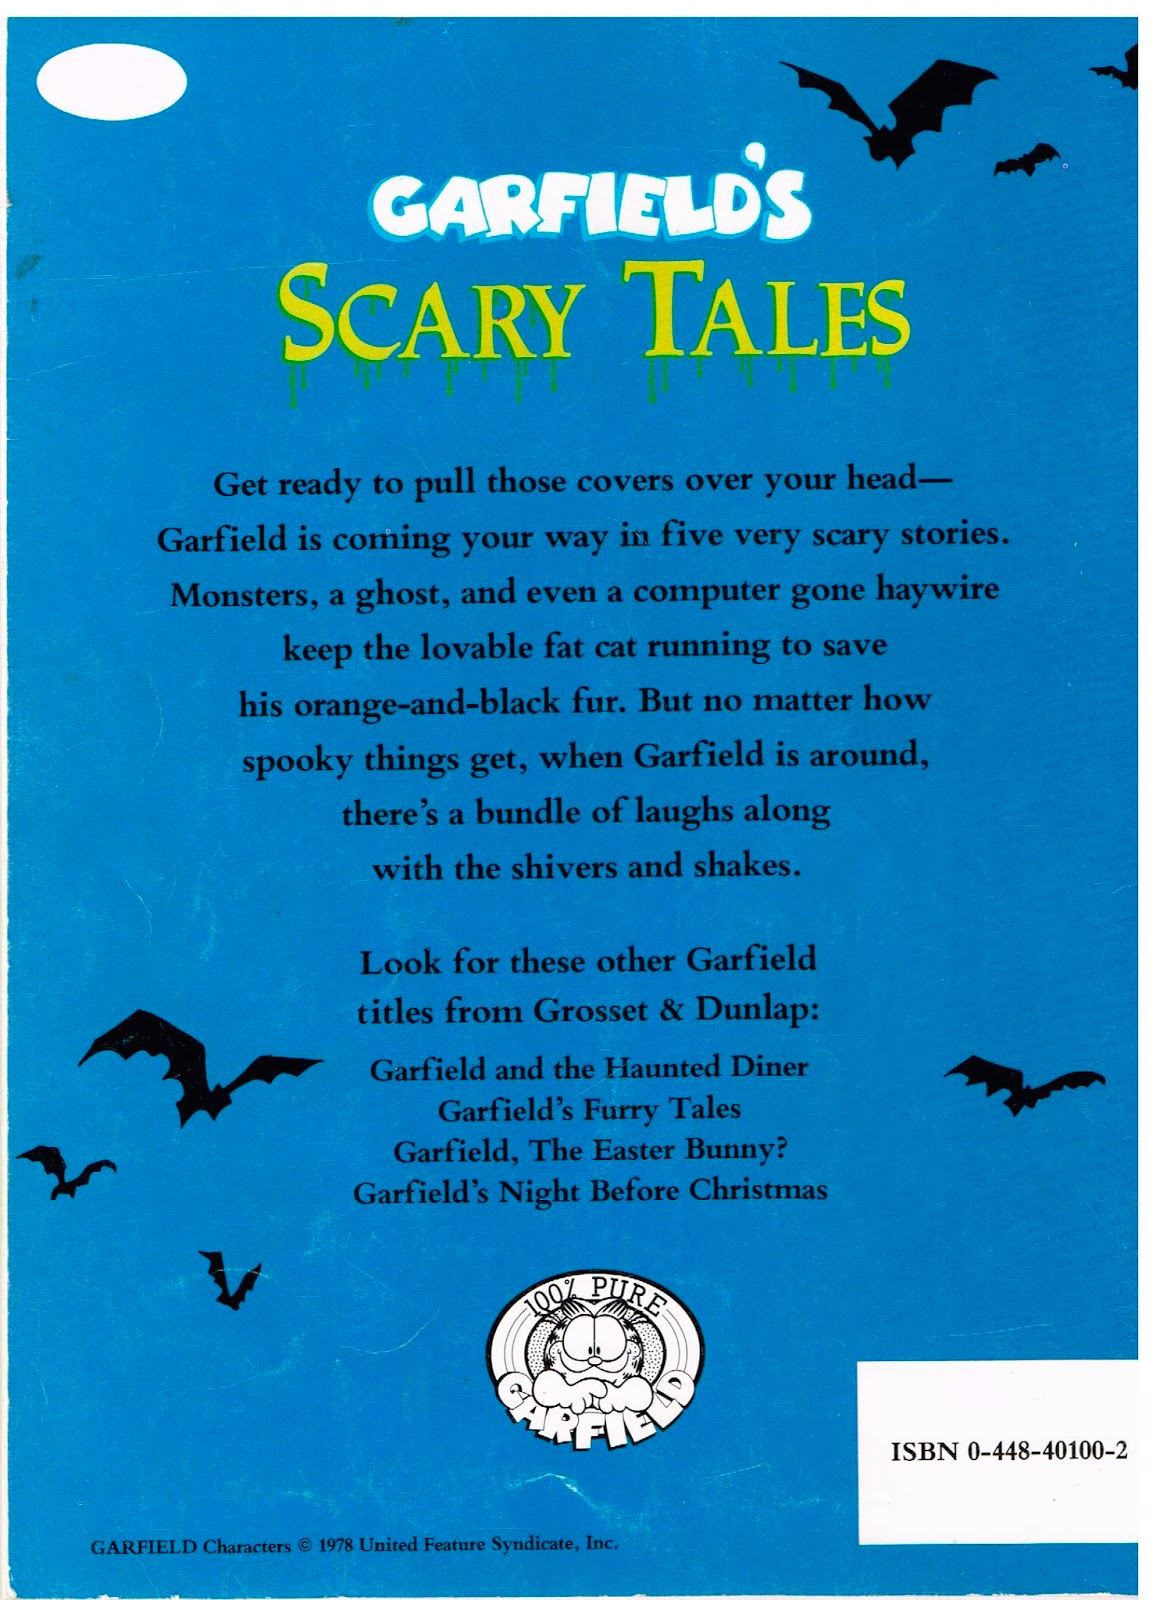 Uncategorized Scary Stories For Little Ones 20 years before 2000 retro reading corner garfields scary tales overall this is not a bad little collection of creepy stories featuring jim davis greatest creation i liked the as kid